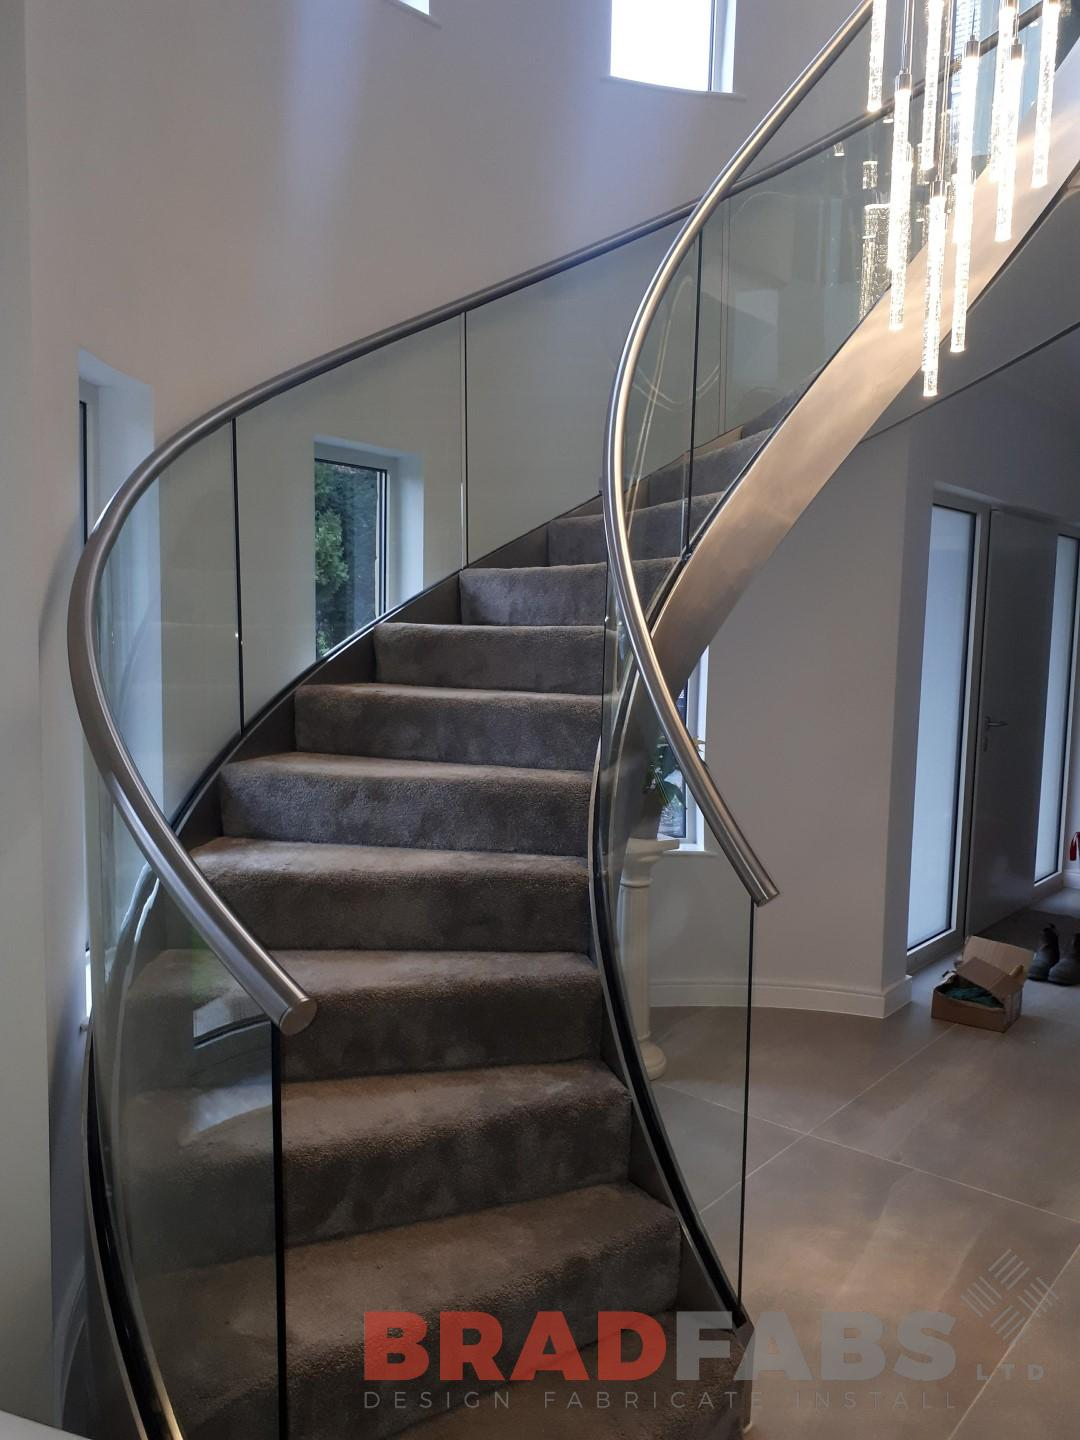 The wow factor in helix staircases manufacutred by Bradfabs